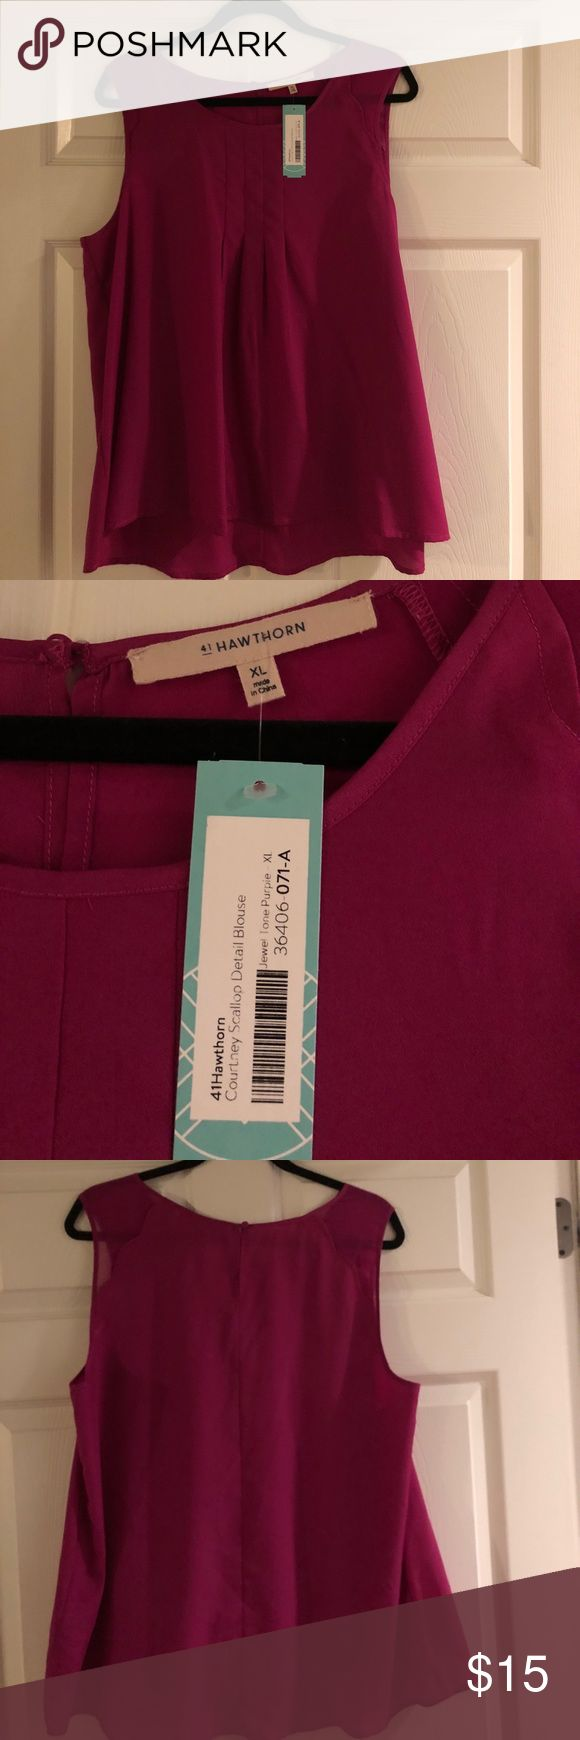 41 Hawthorne magenta tank top size extra-large 41 Hawthorne magenta tank top called Courtney scallop detail blouse size extra-large from stitch fix 41 hawthorn Tops Tank Tops